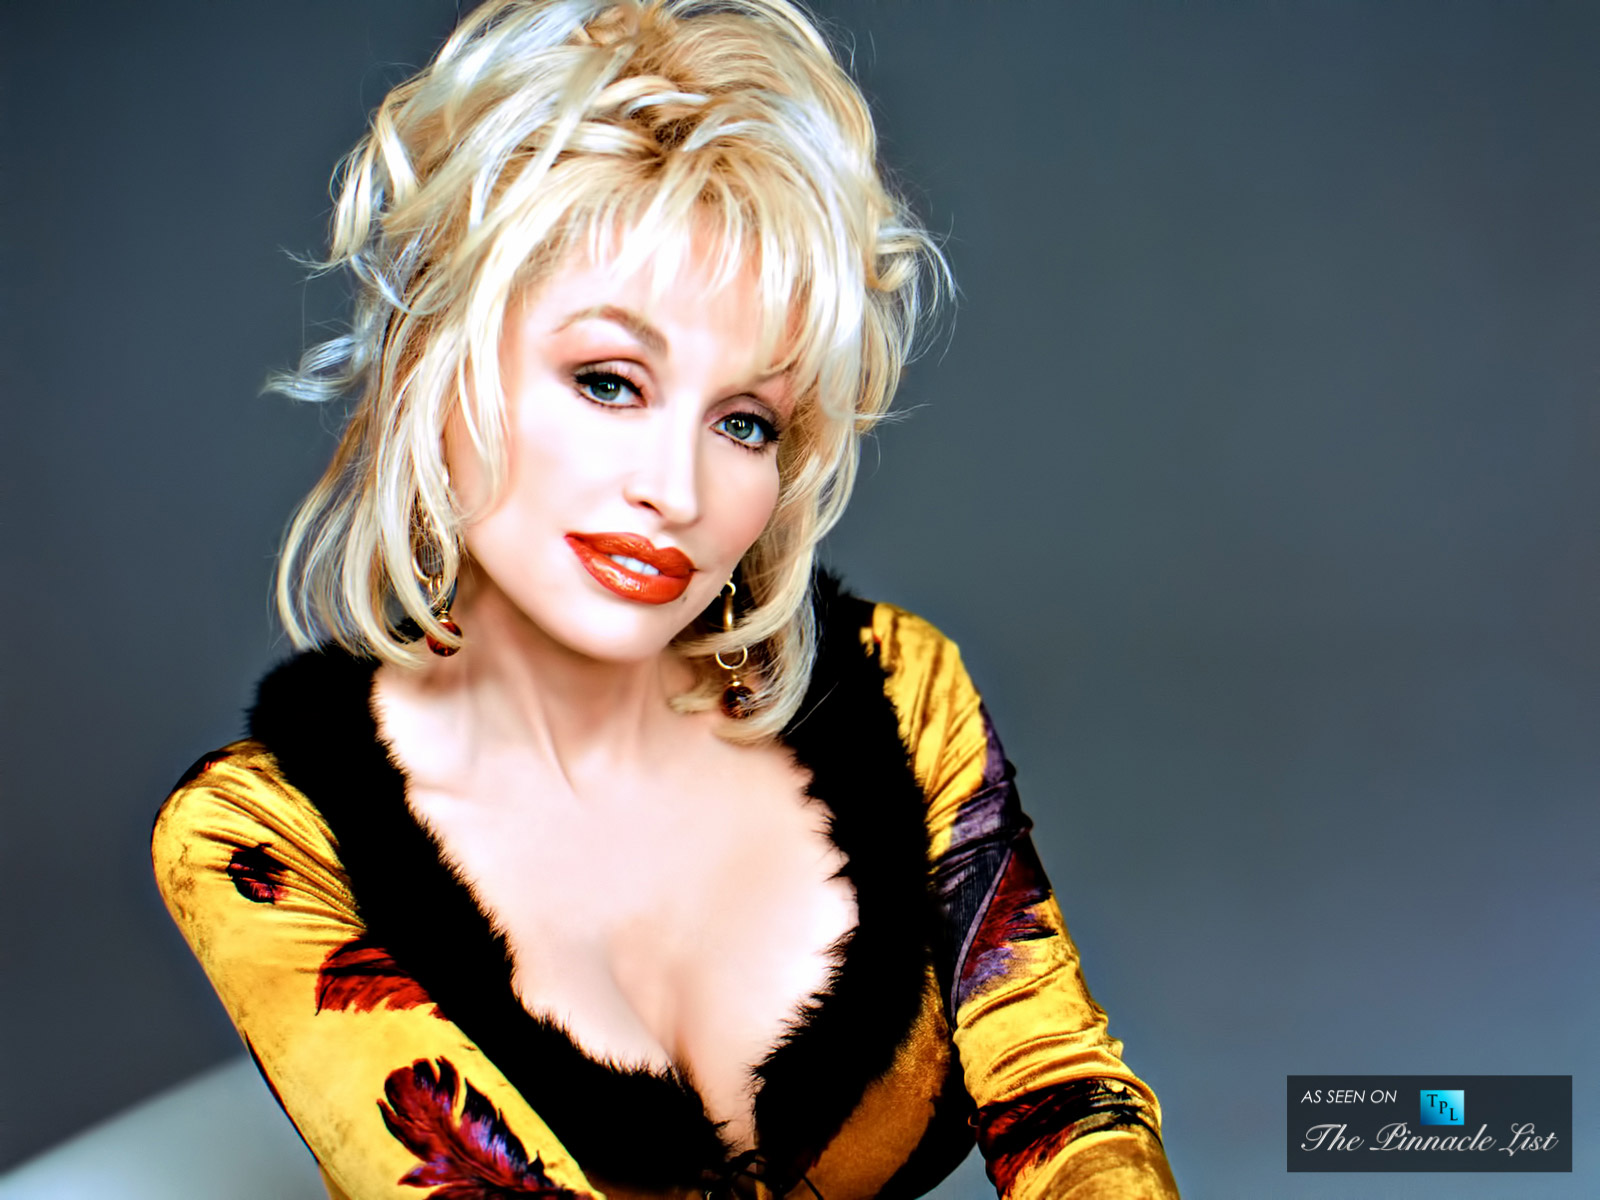 Dolly Parton - Protecting High Value Assets - Five Unusual and Noteworthy Celebrity Insurance Policies